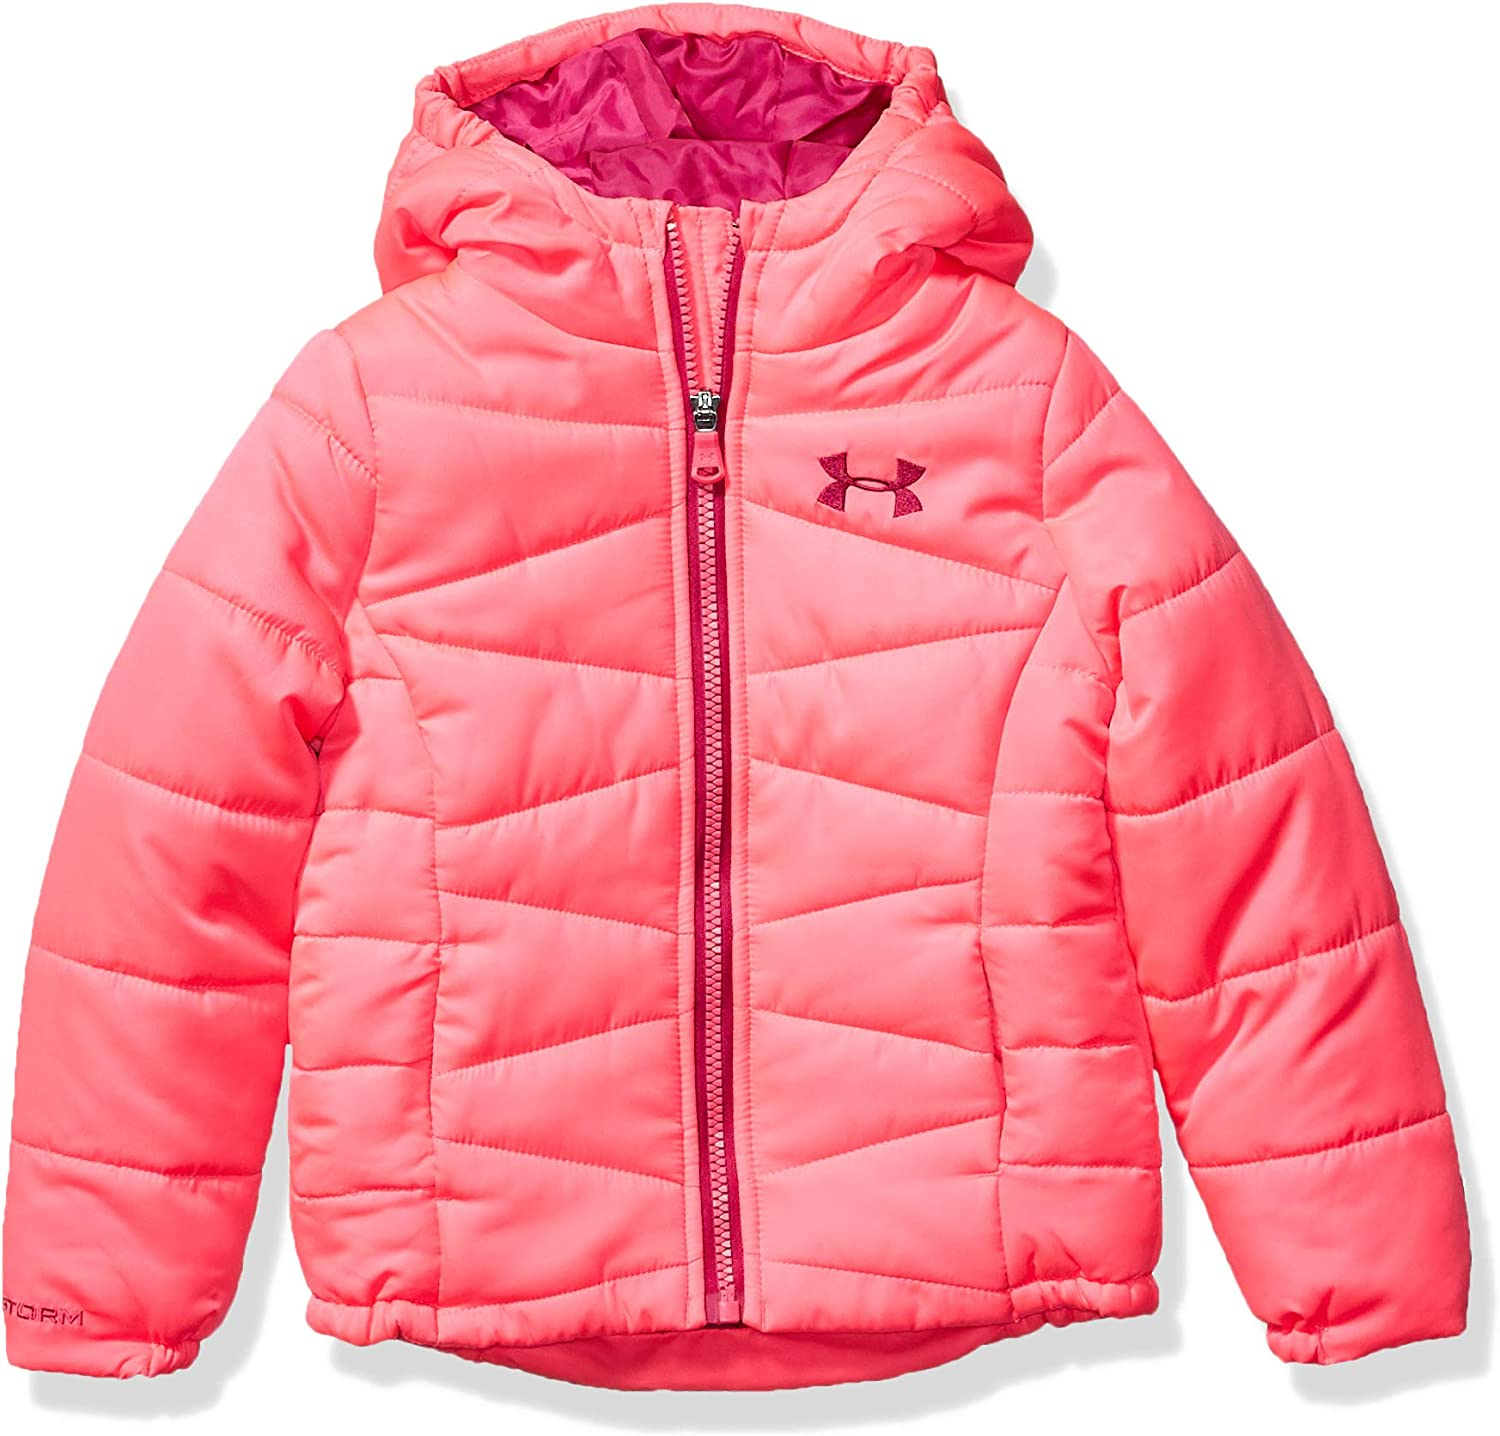 Under Armour Girls ColdGear Prime Puffer Jacket